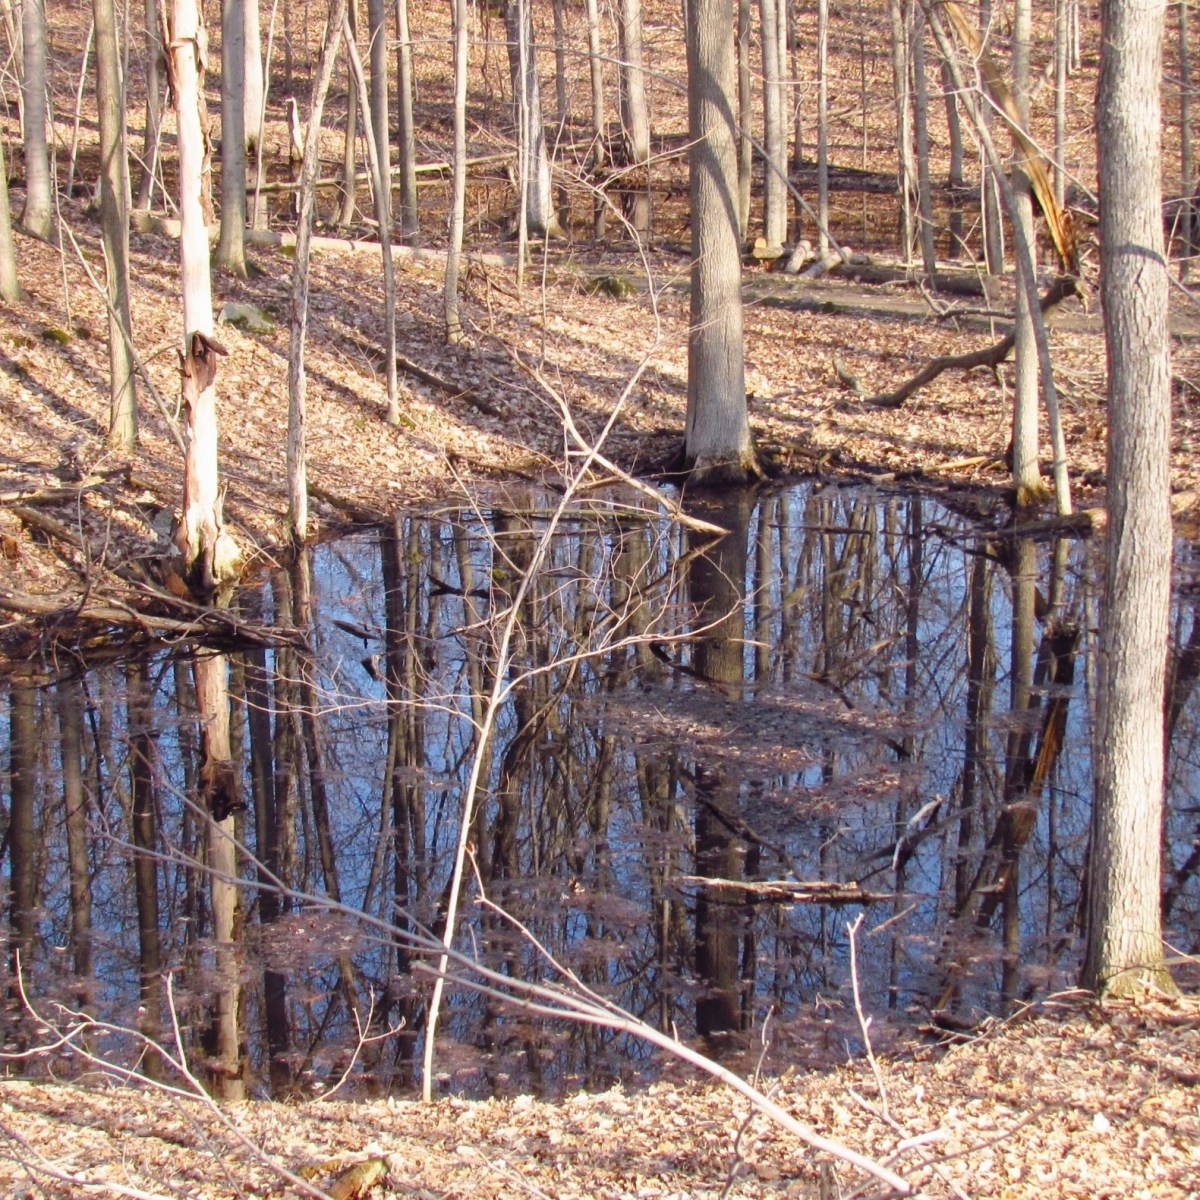 A vernal pond in a wooded area in early spring